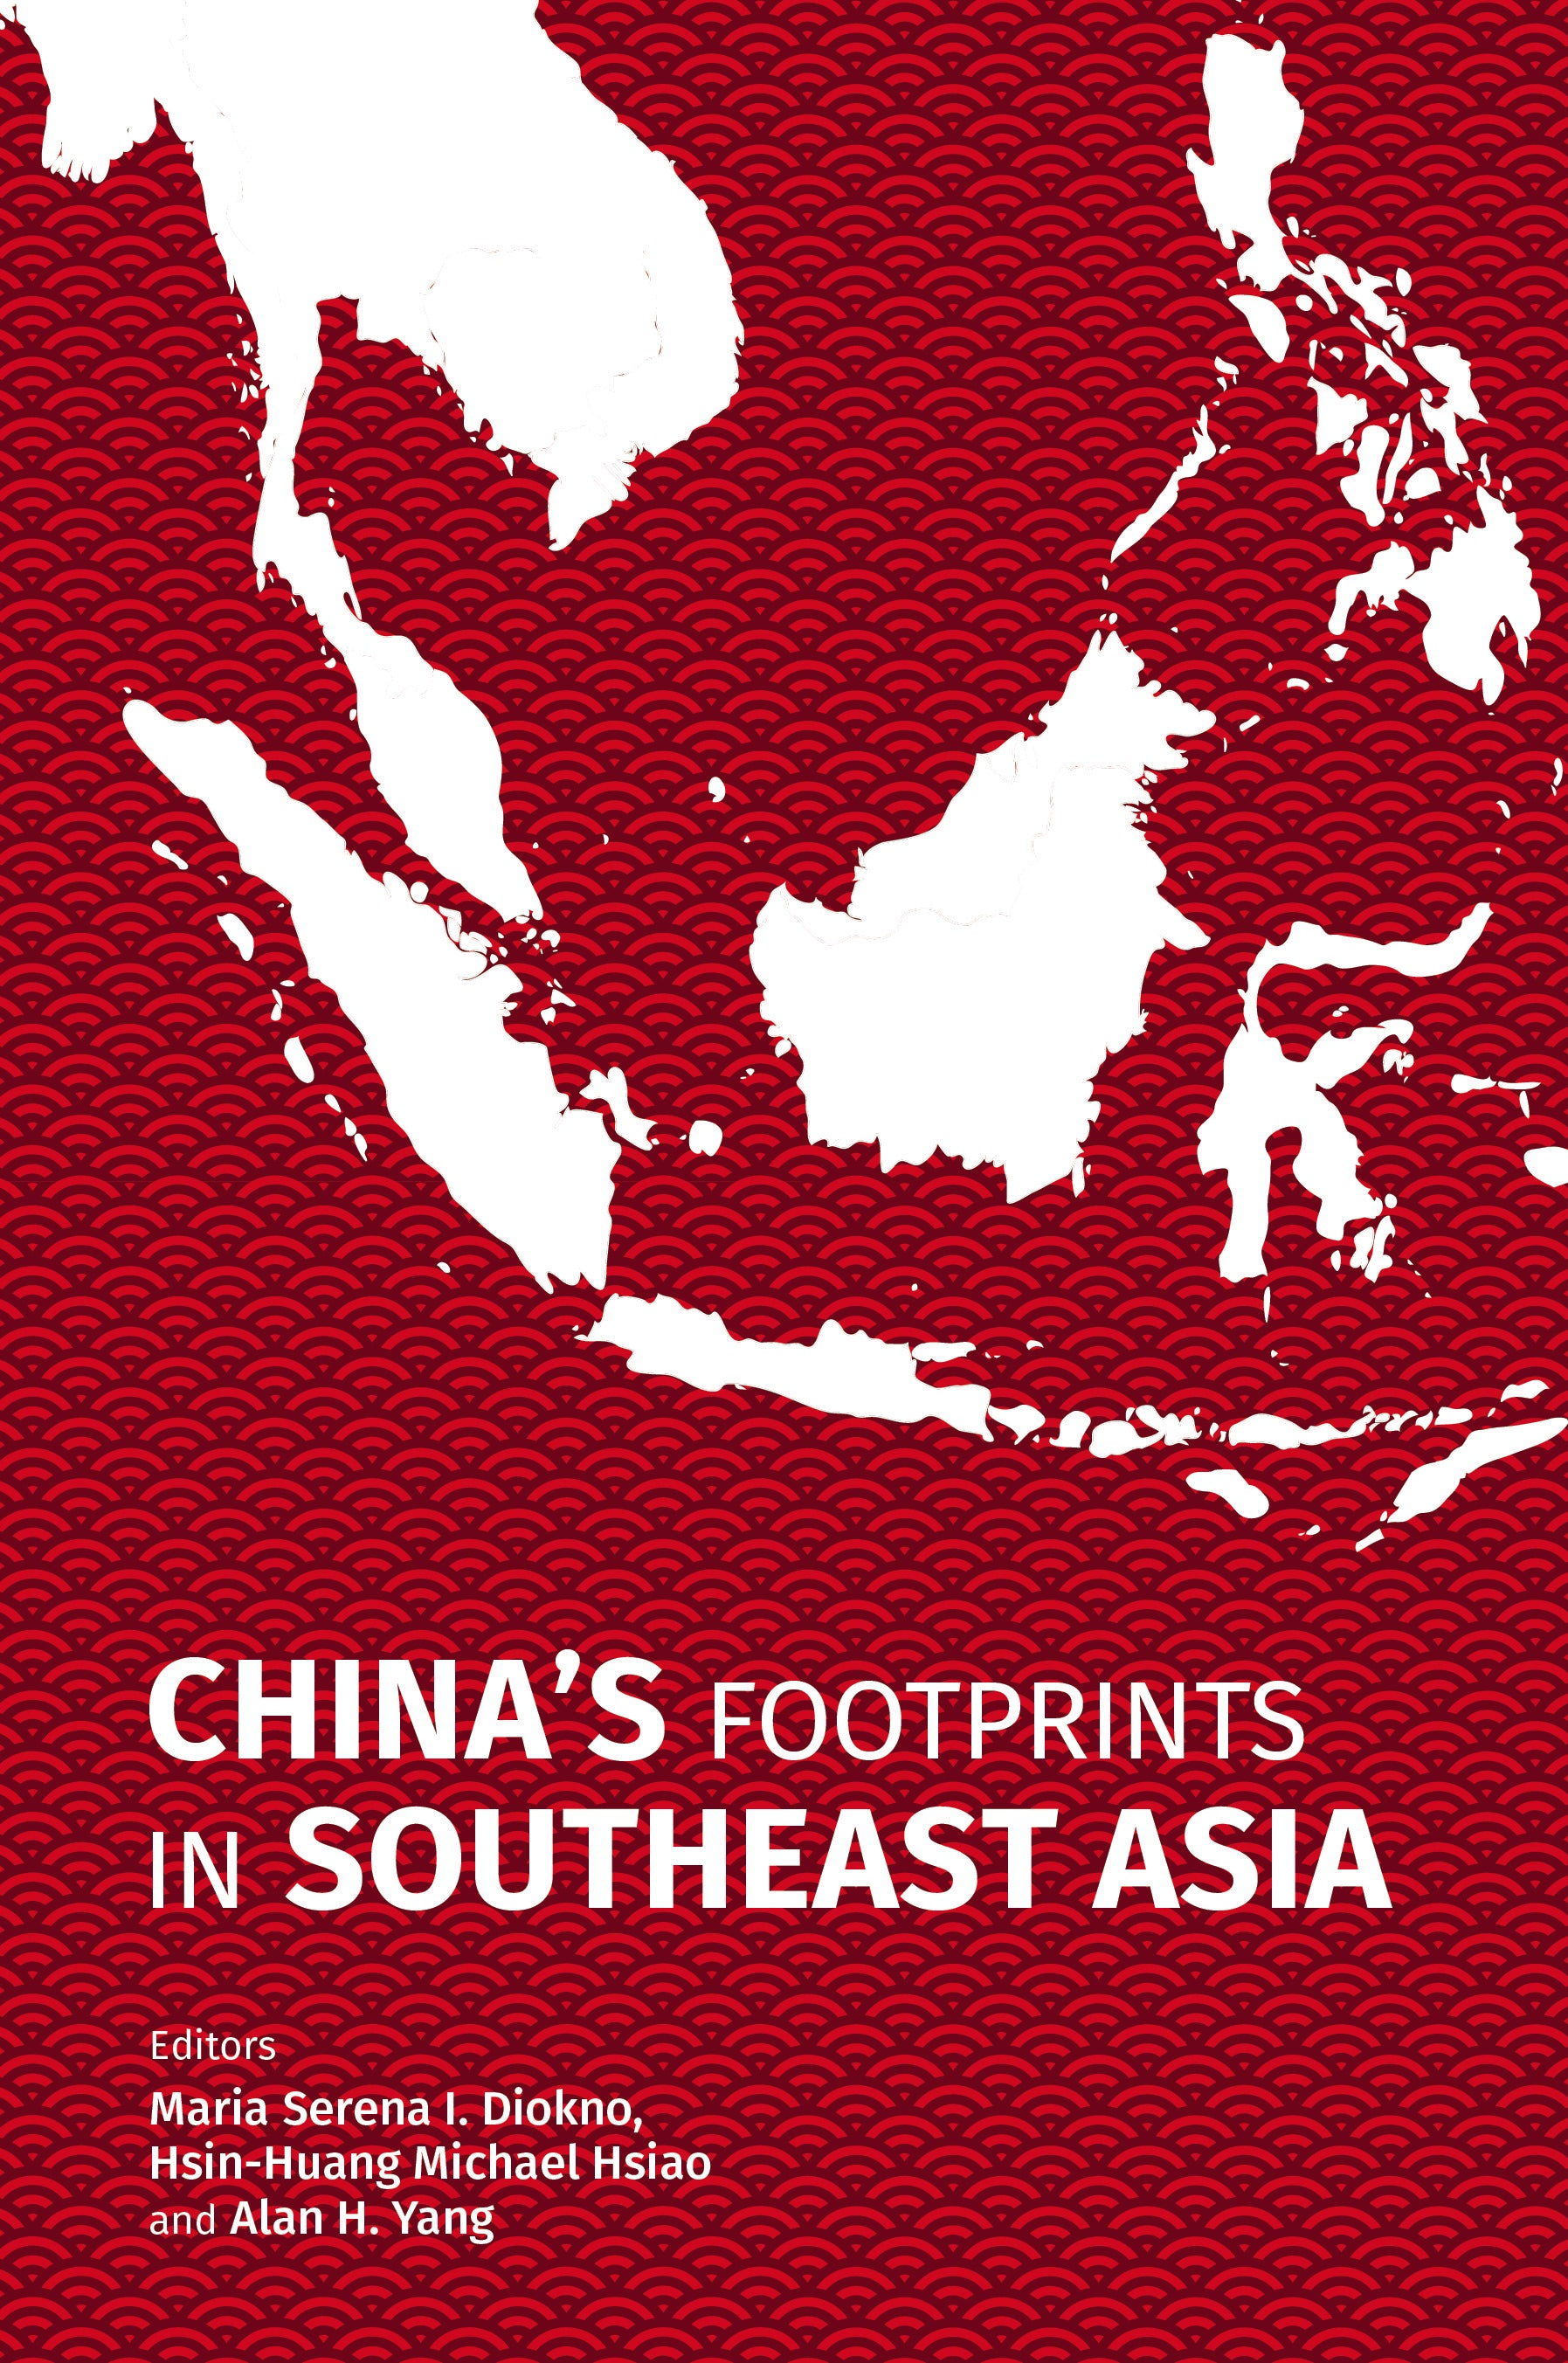 Chinas Footprints in Southeast Asia